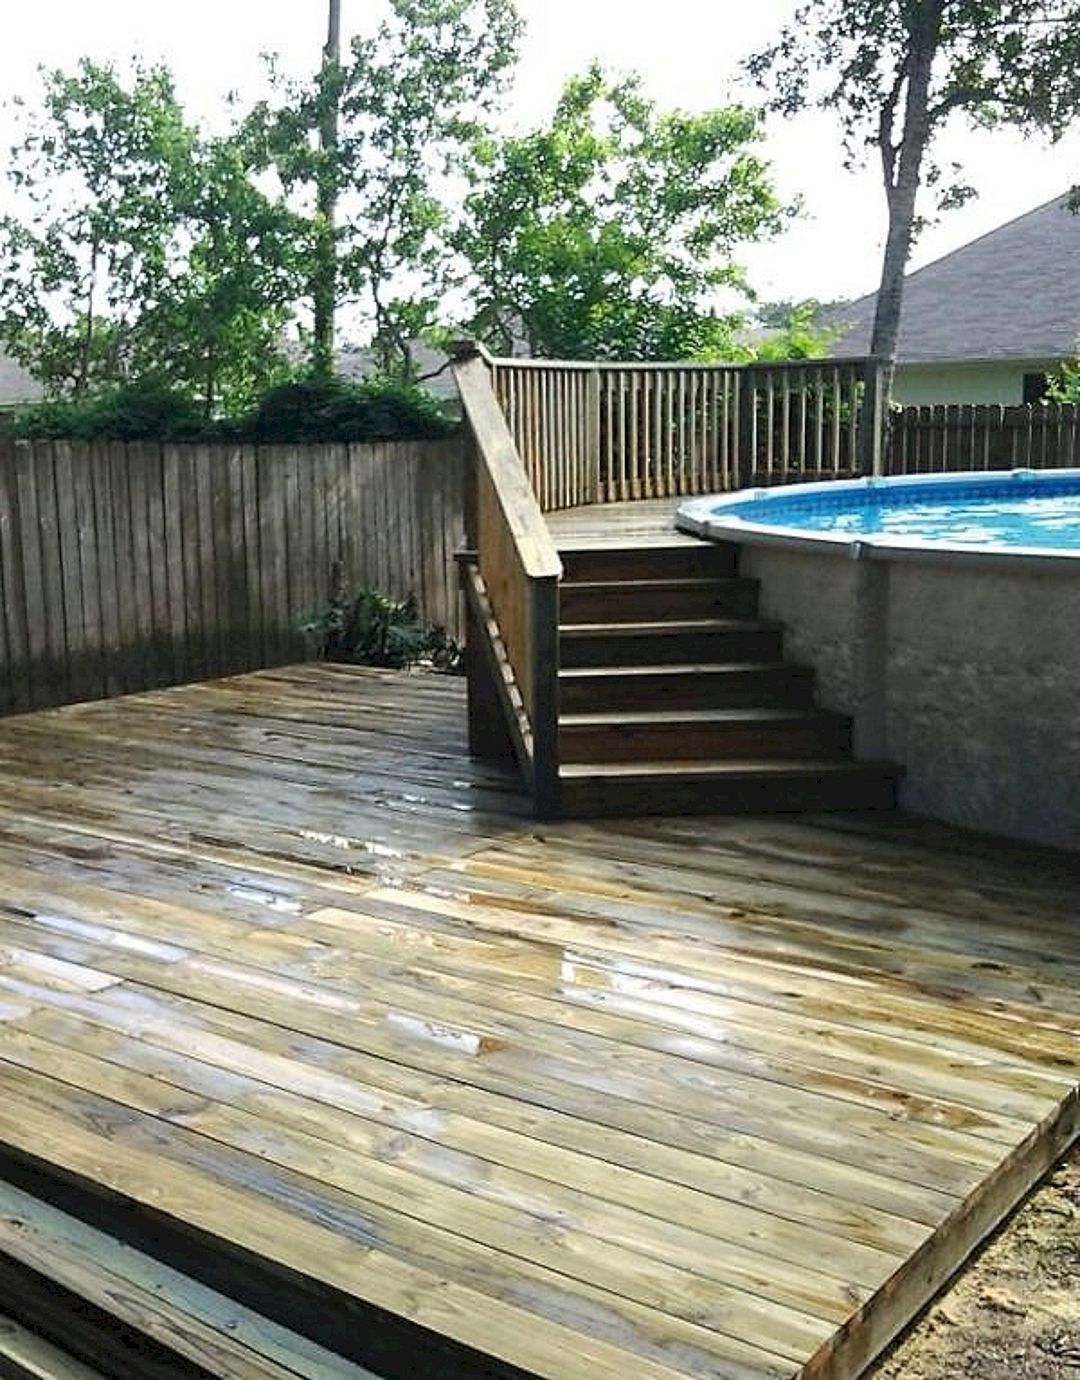 Top 81 diy above ground pool ideas on a budget read - Above ground pool deck ideas on a budget ...